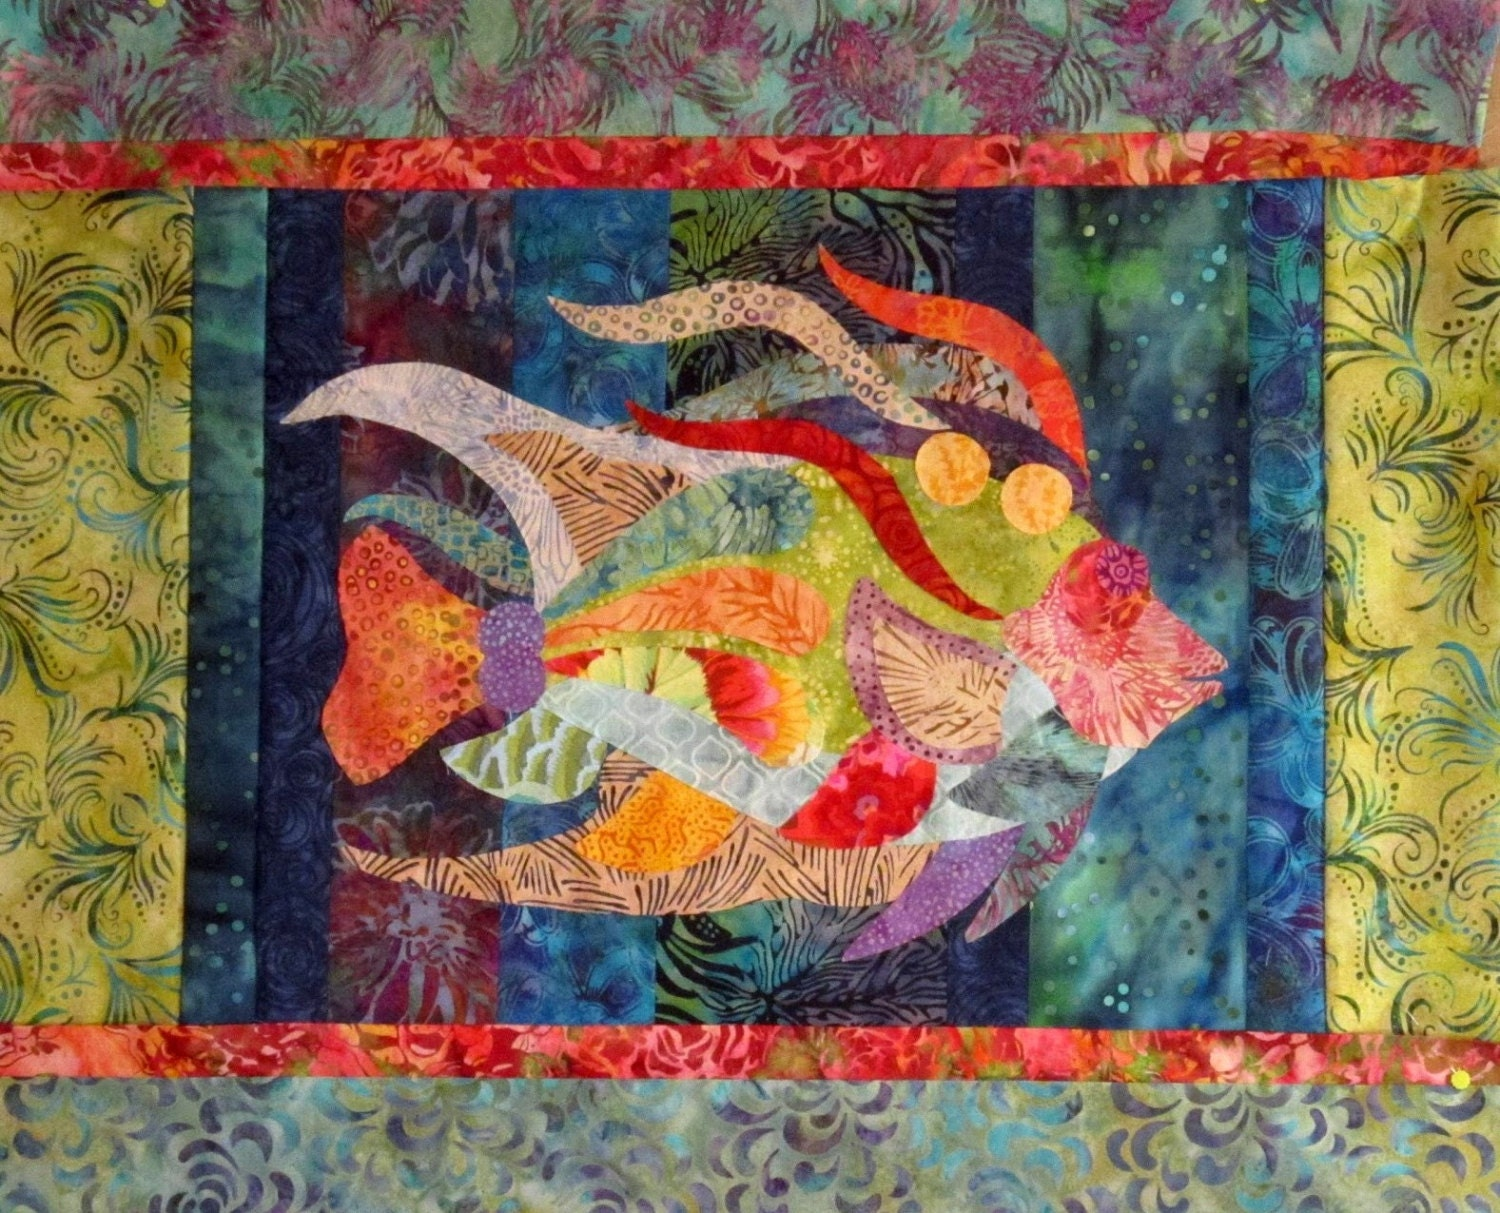 put to what patch few sea fixed post i quilted well sugar first s this the show img tag line t remember selvages by fabric nero you and quilt is fishes after spice with fish over can making them names